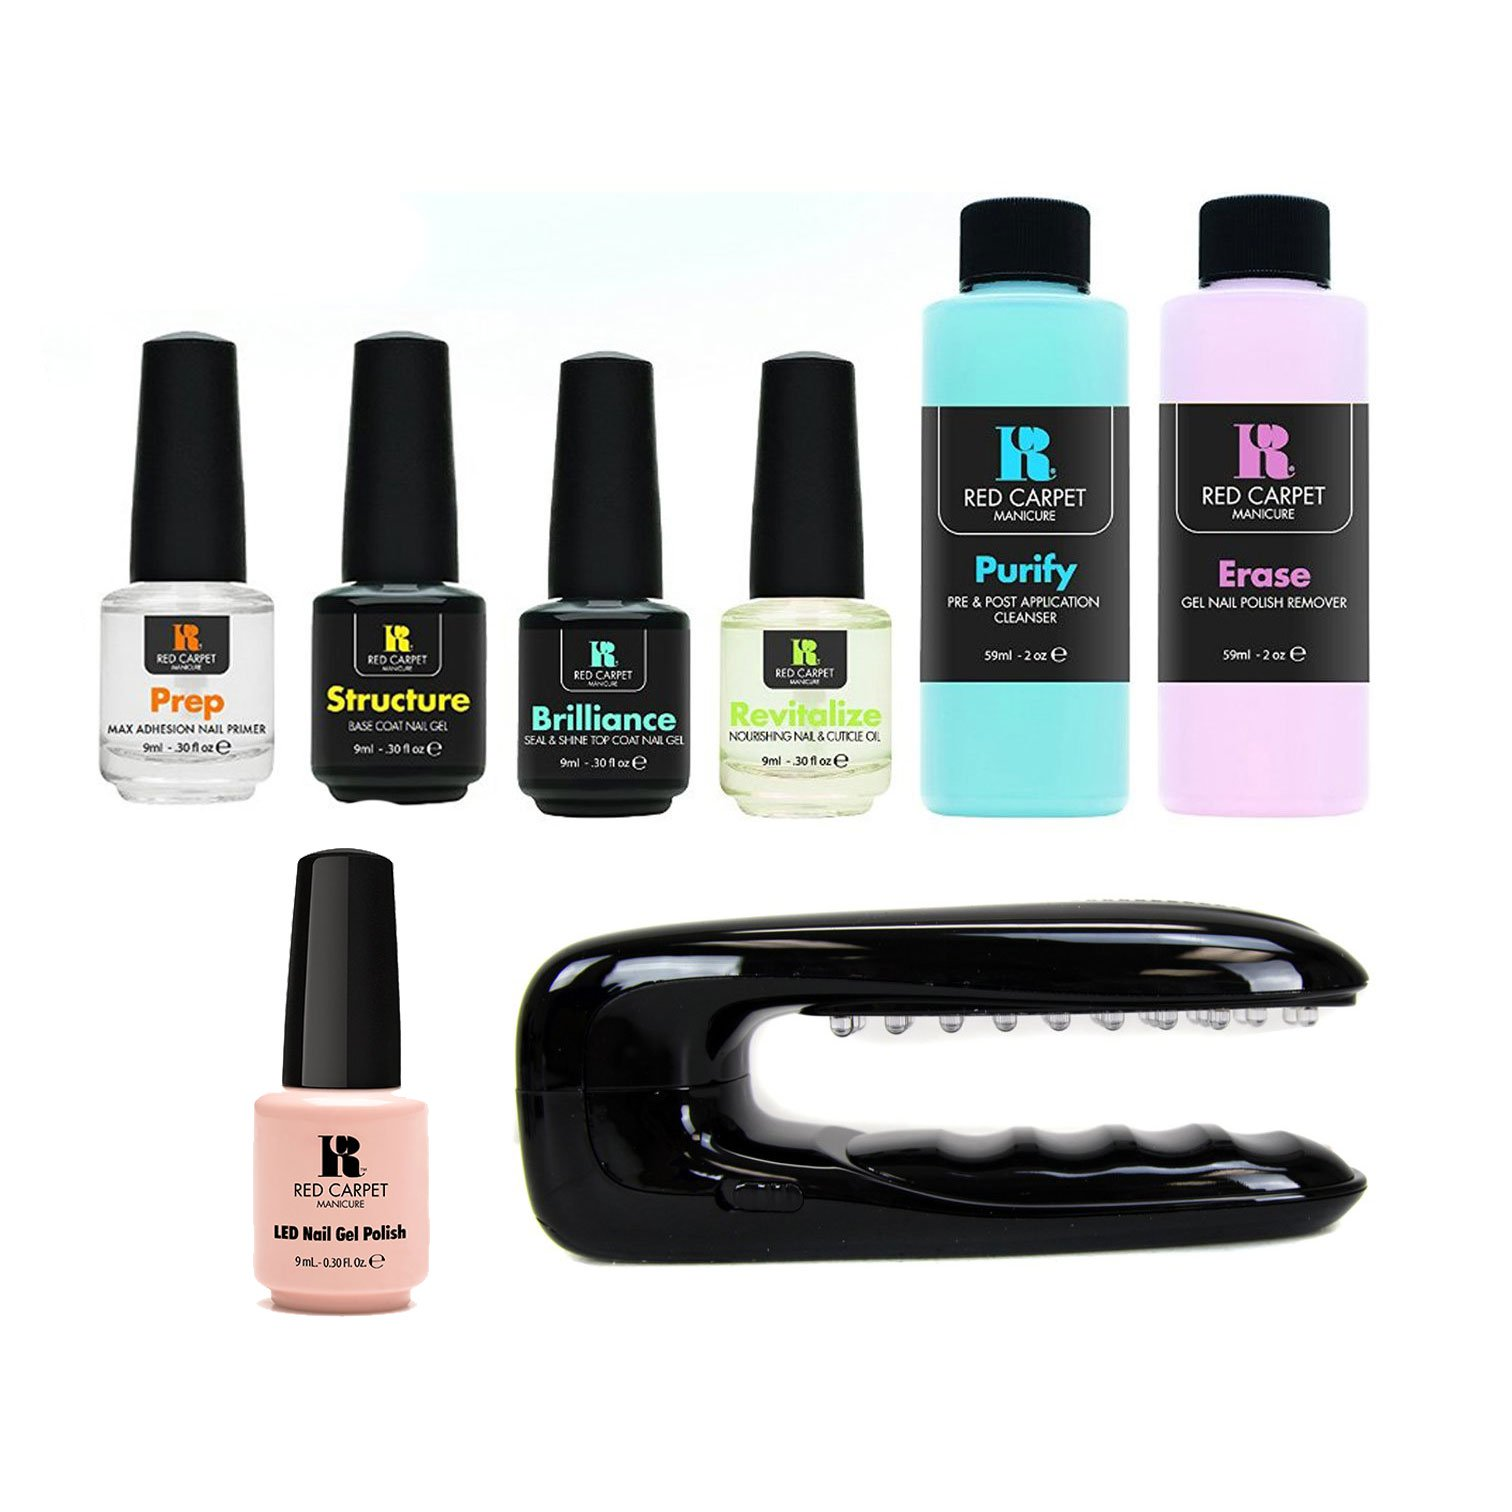 Red Carpet Manicure Portable LED Package Soak Off Gel Nail Polish Starter Kit